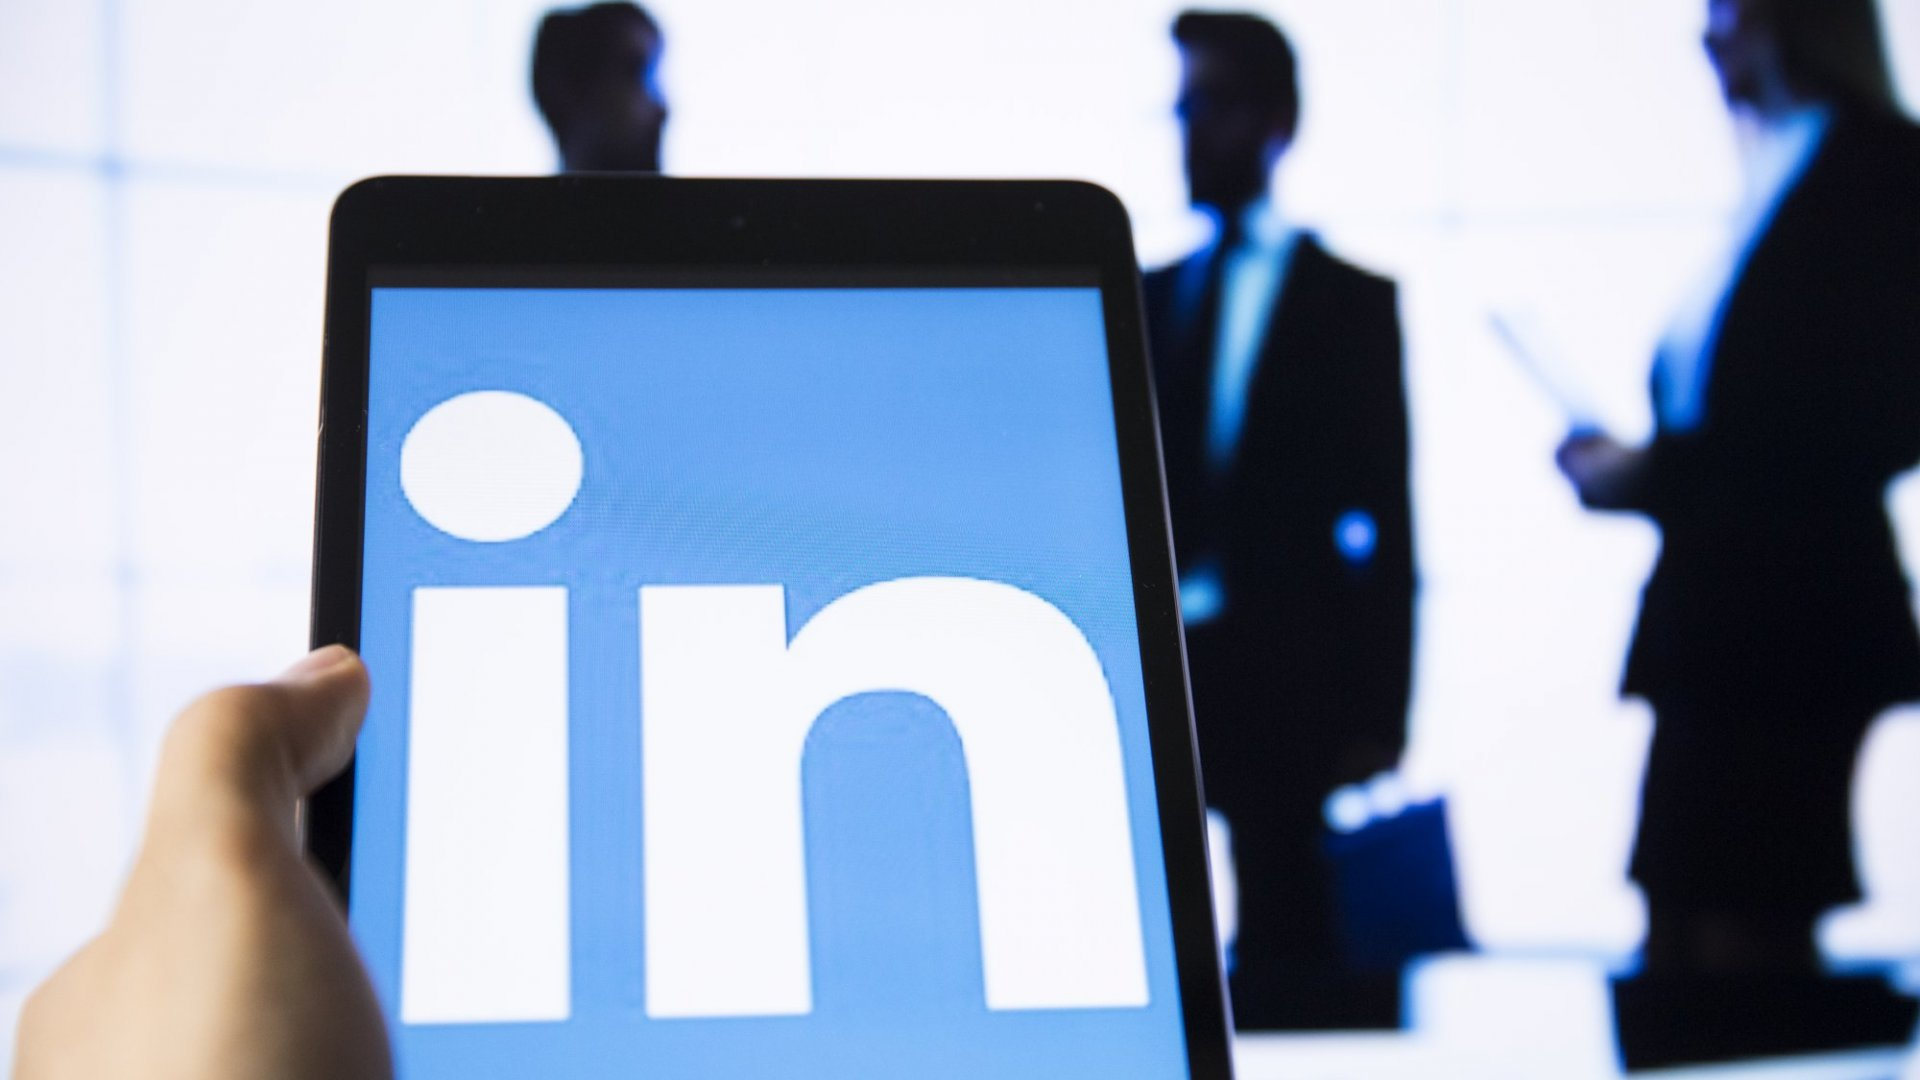 This Social Media Platform Should Be the Best for Attracting and Reaching Potential New Clients